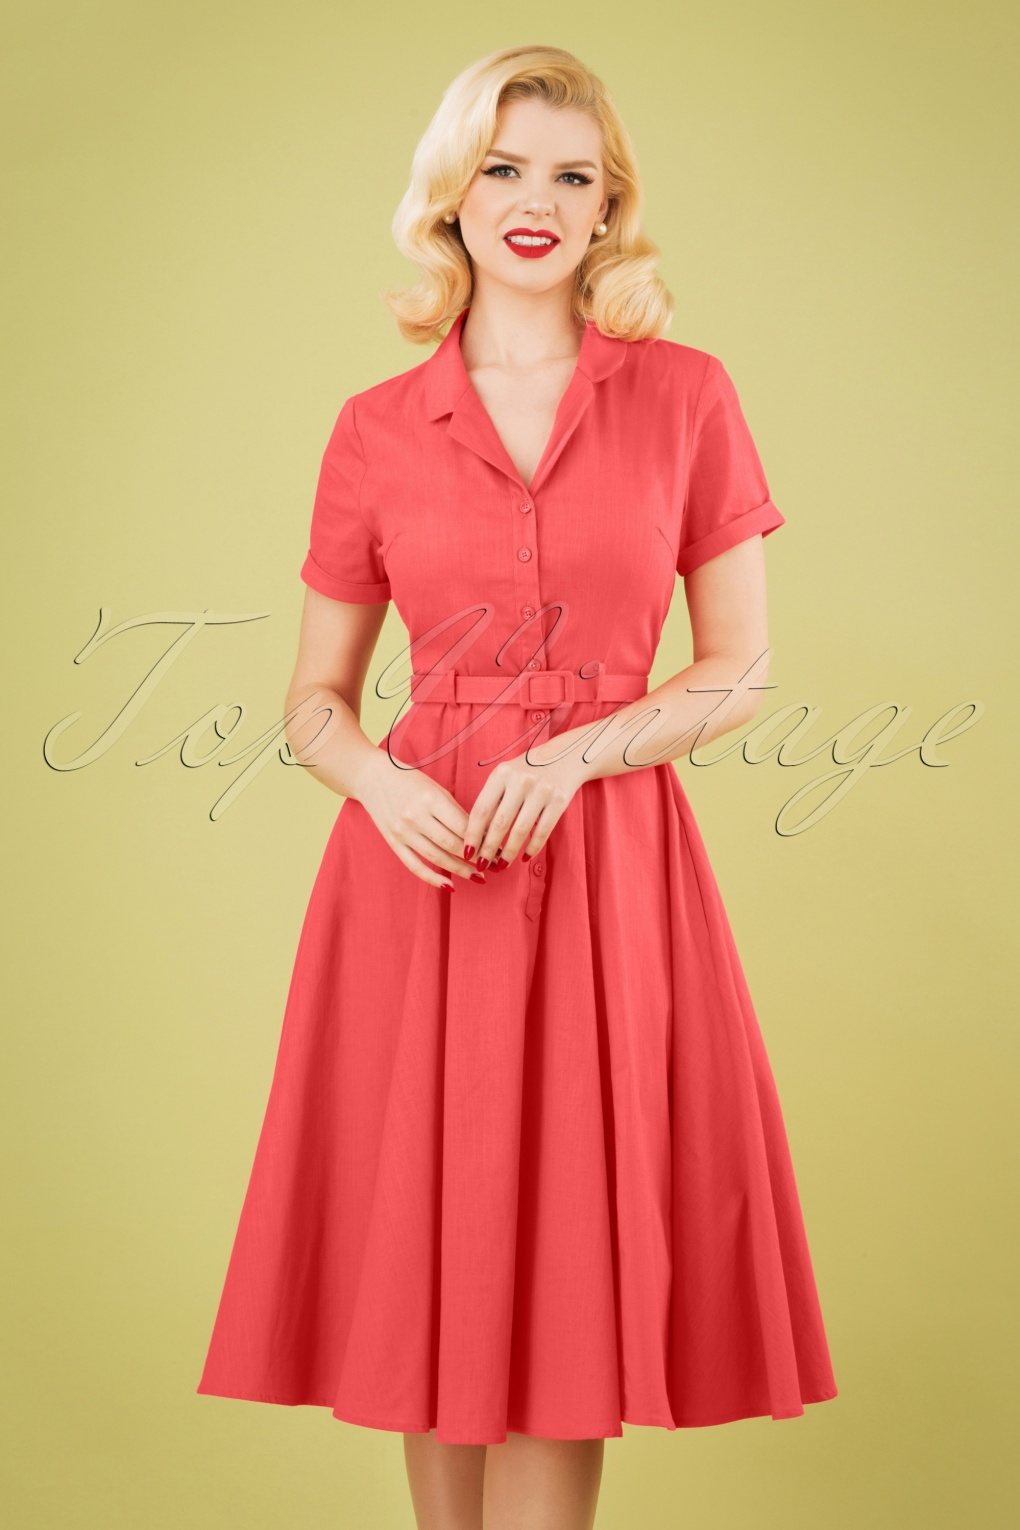 1950s Plus Size Dresses, Swing Dresses 50s Caterina Swing Dress in Coral Pink £65.06 AT vintagedancer.com